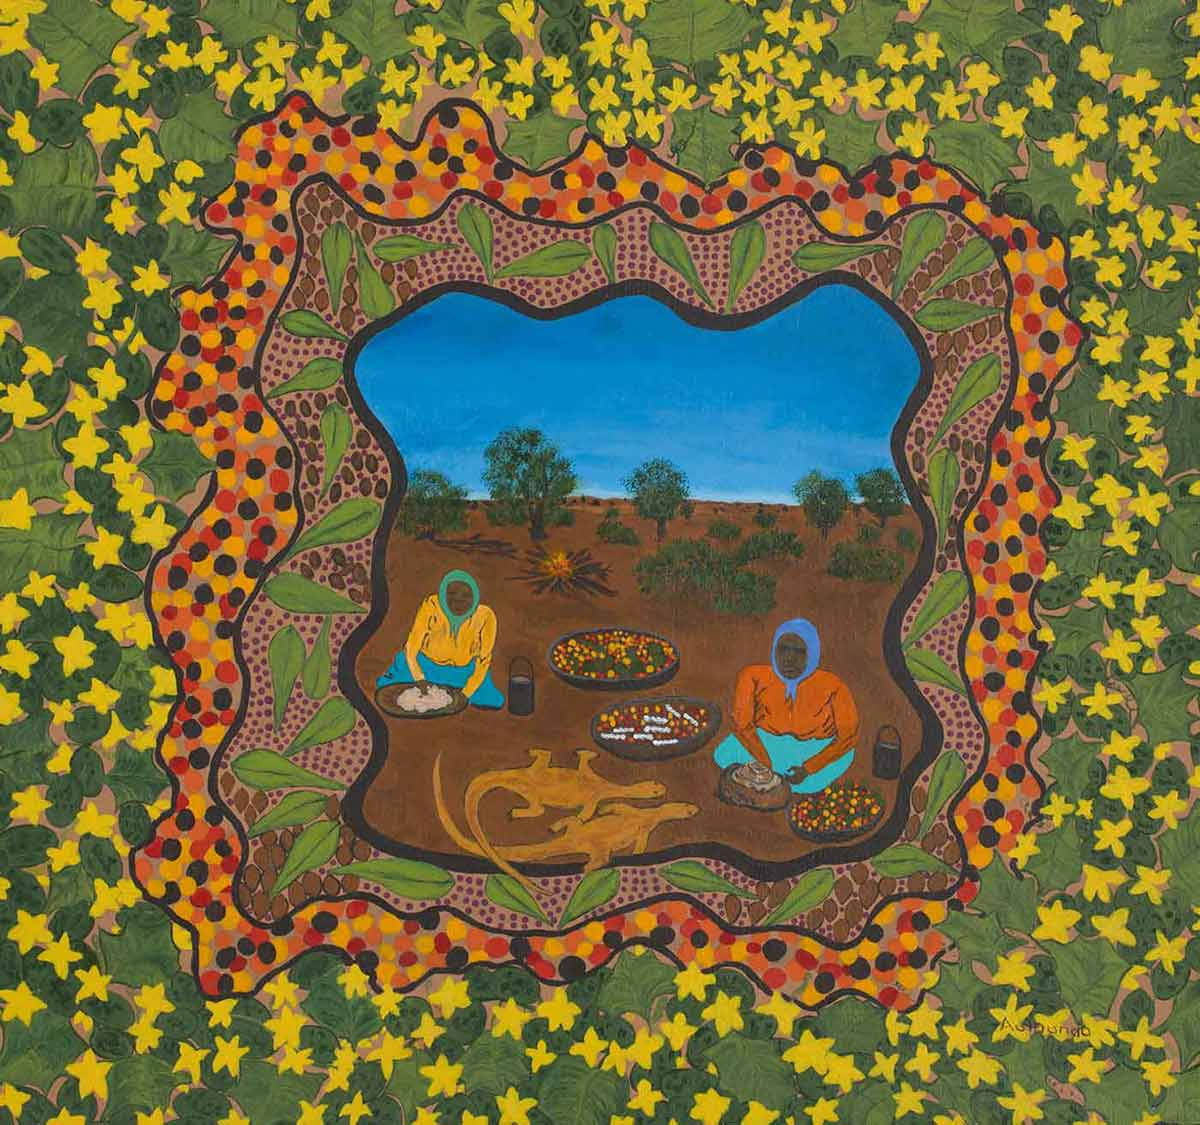 An acrylic painting on canvas featuring two elderly female figures sitting on the ground in the centre. Surrounding the two figures are trees, a camp fire, two goannas and bowls of berry like food. The illustration is outlined with various illustrative borders depicting leaves and dots with a further black solid painted frame on the outer edge. - click to view larger image